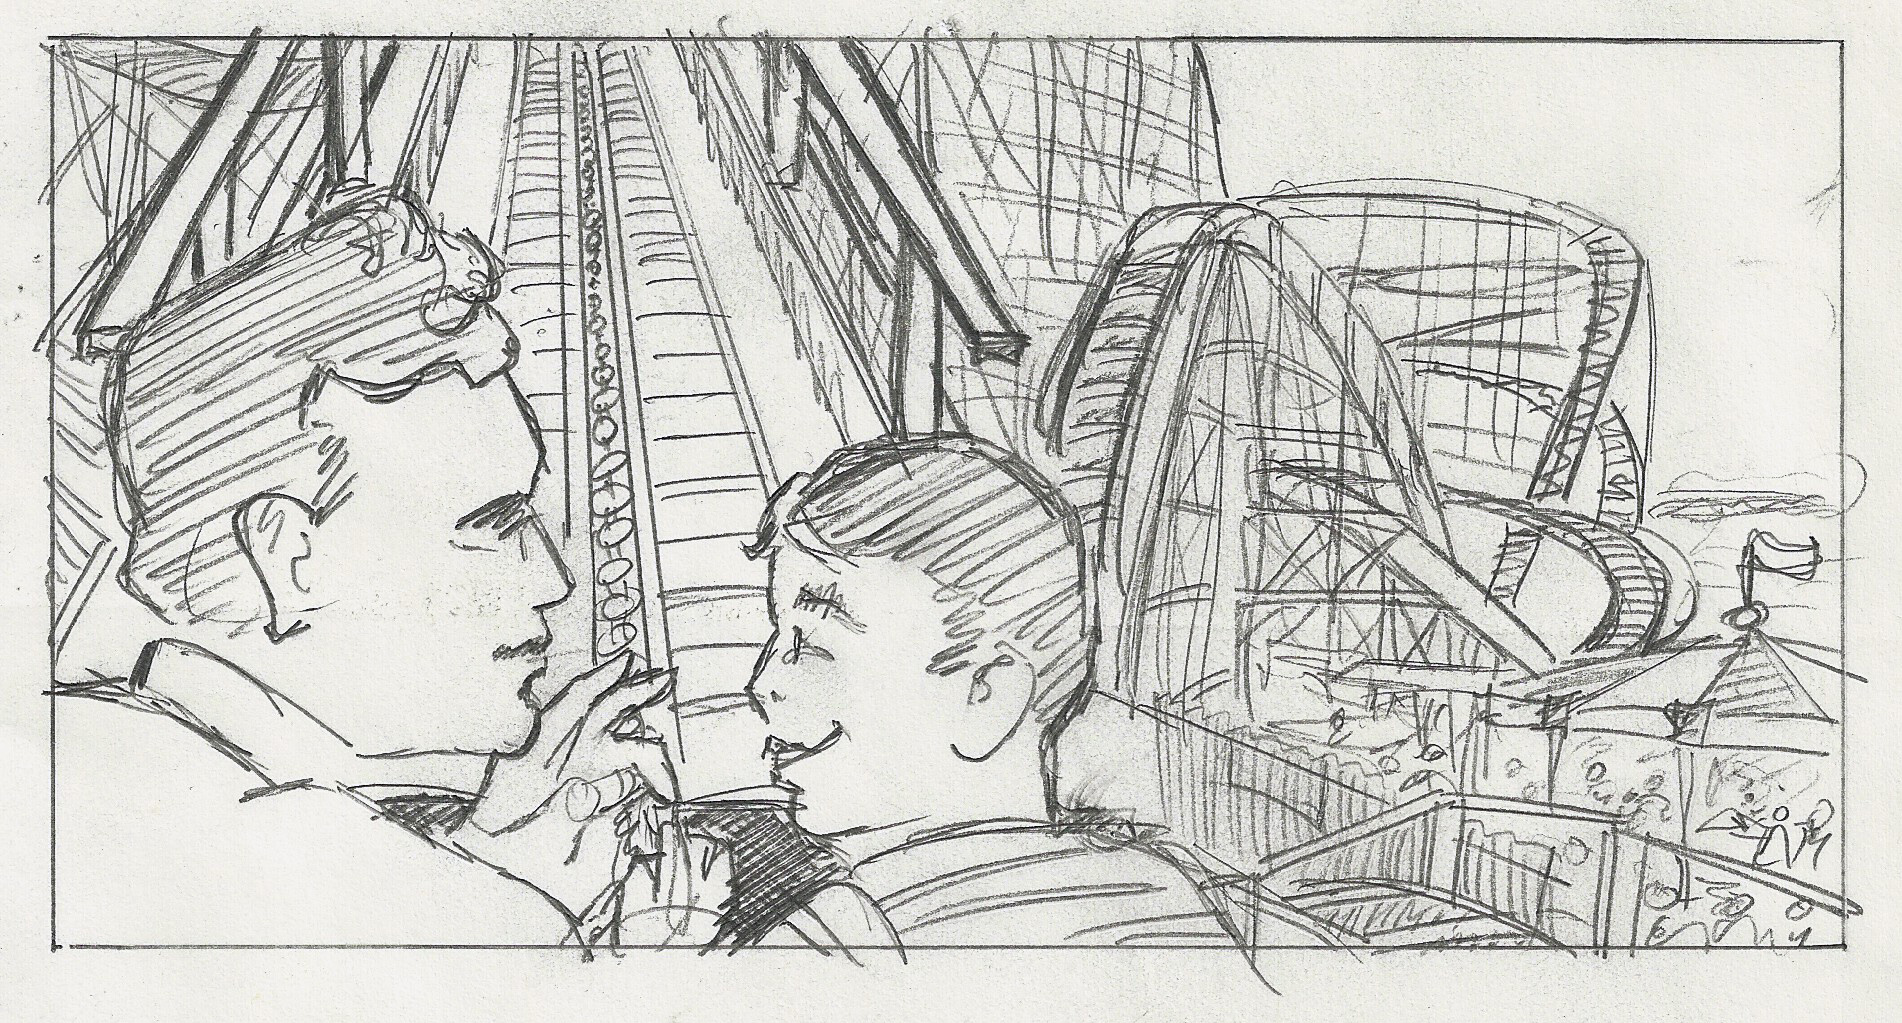 Sketch for Father and Son Ascending The Coaster